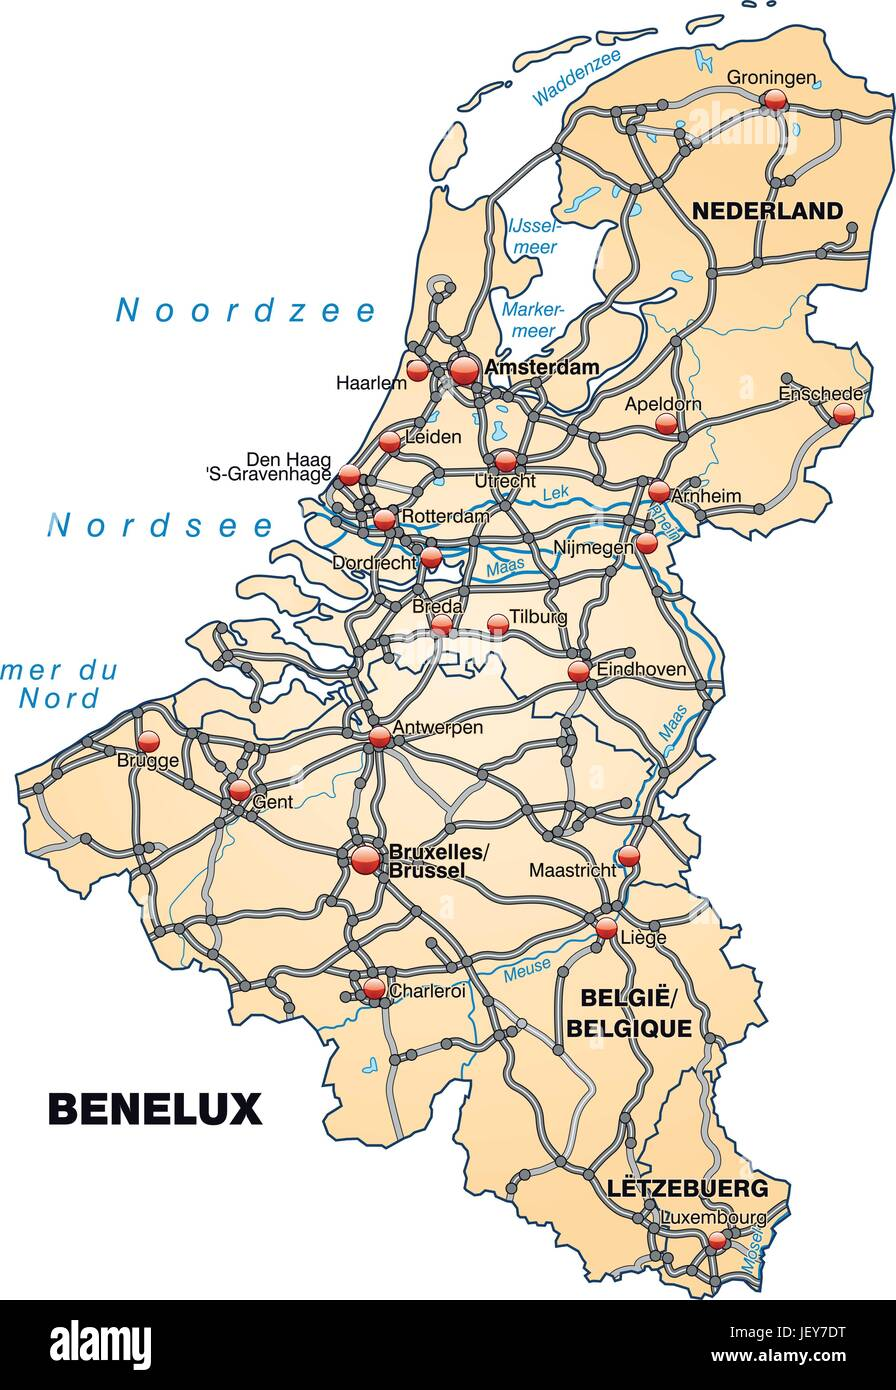 Card atlas map of the world map traffic transportation belgium card atlas map of the world map traffic transportation belgium gumiabroncs Images